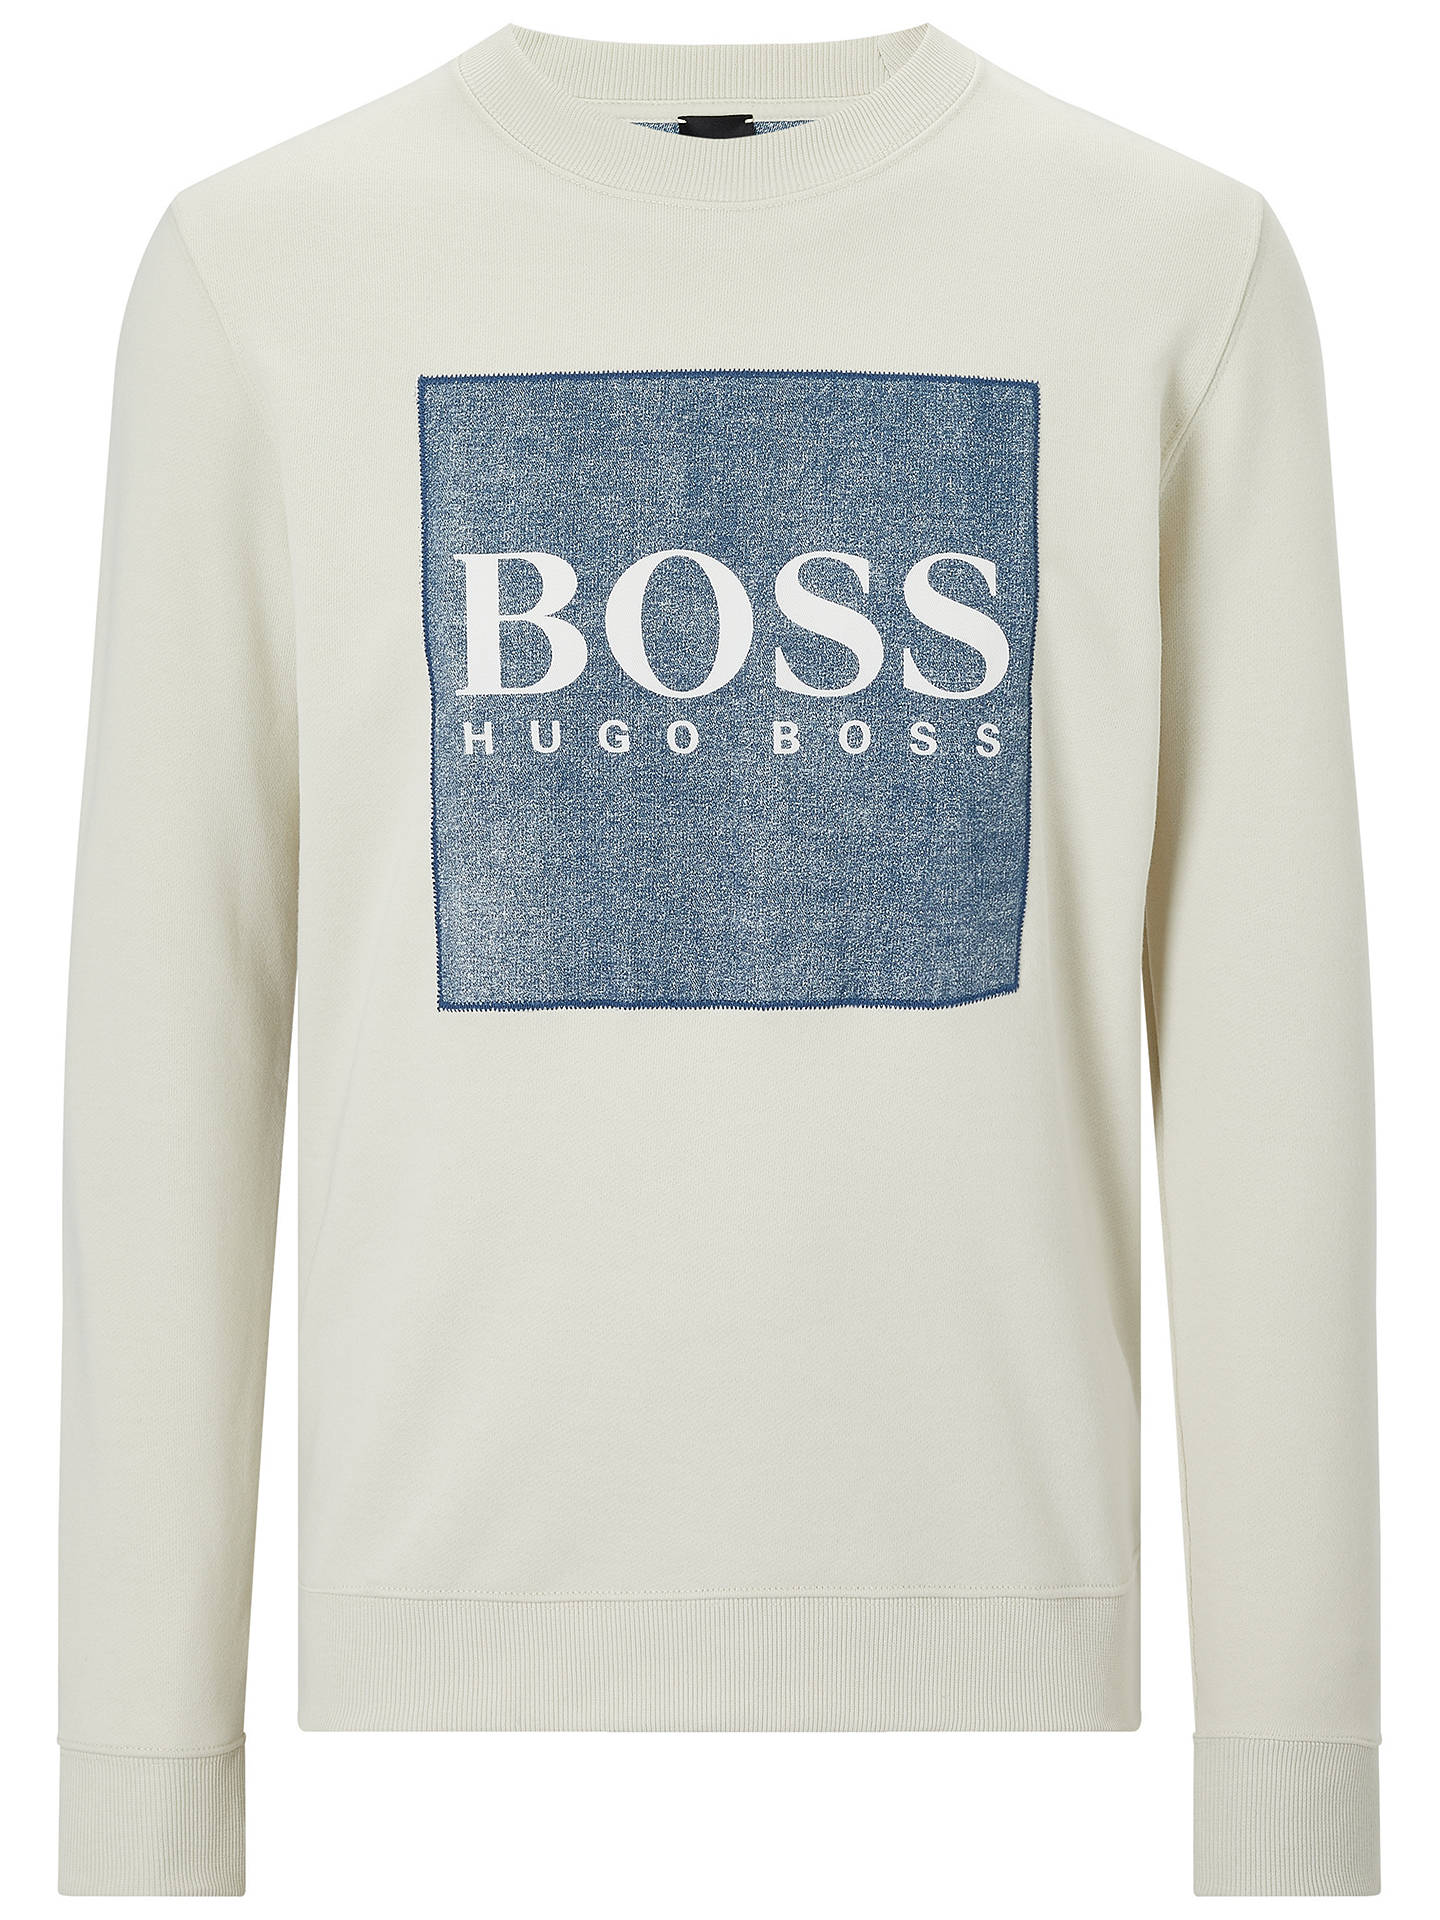 Buy BOSS Wedford Logo Print Sweatshirt, White, L Online at johnlewis.com